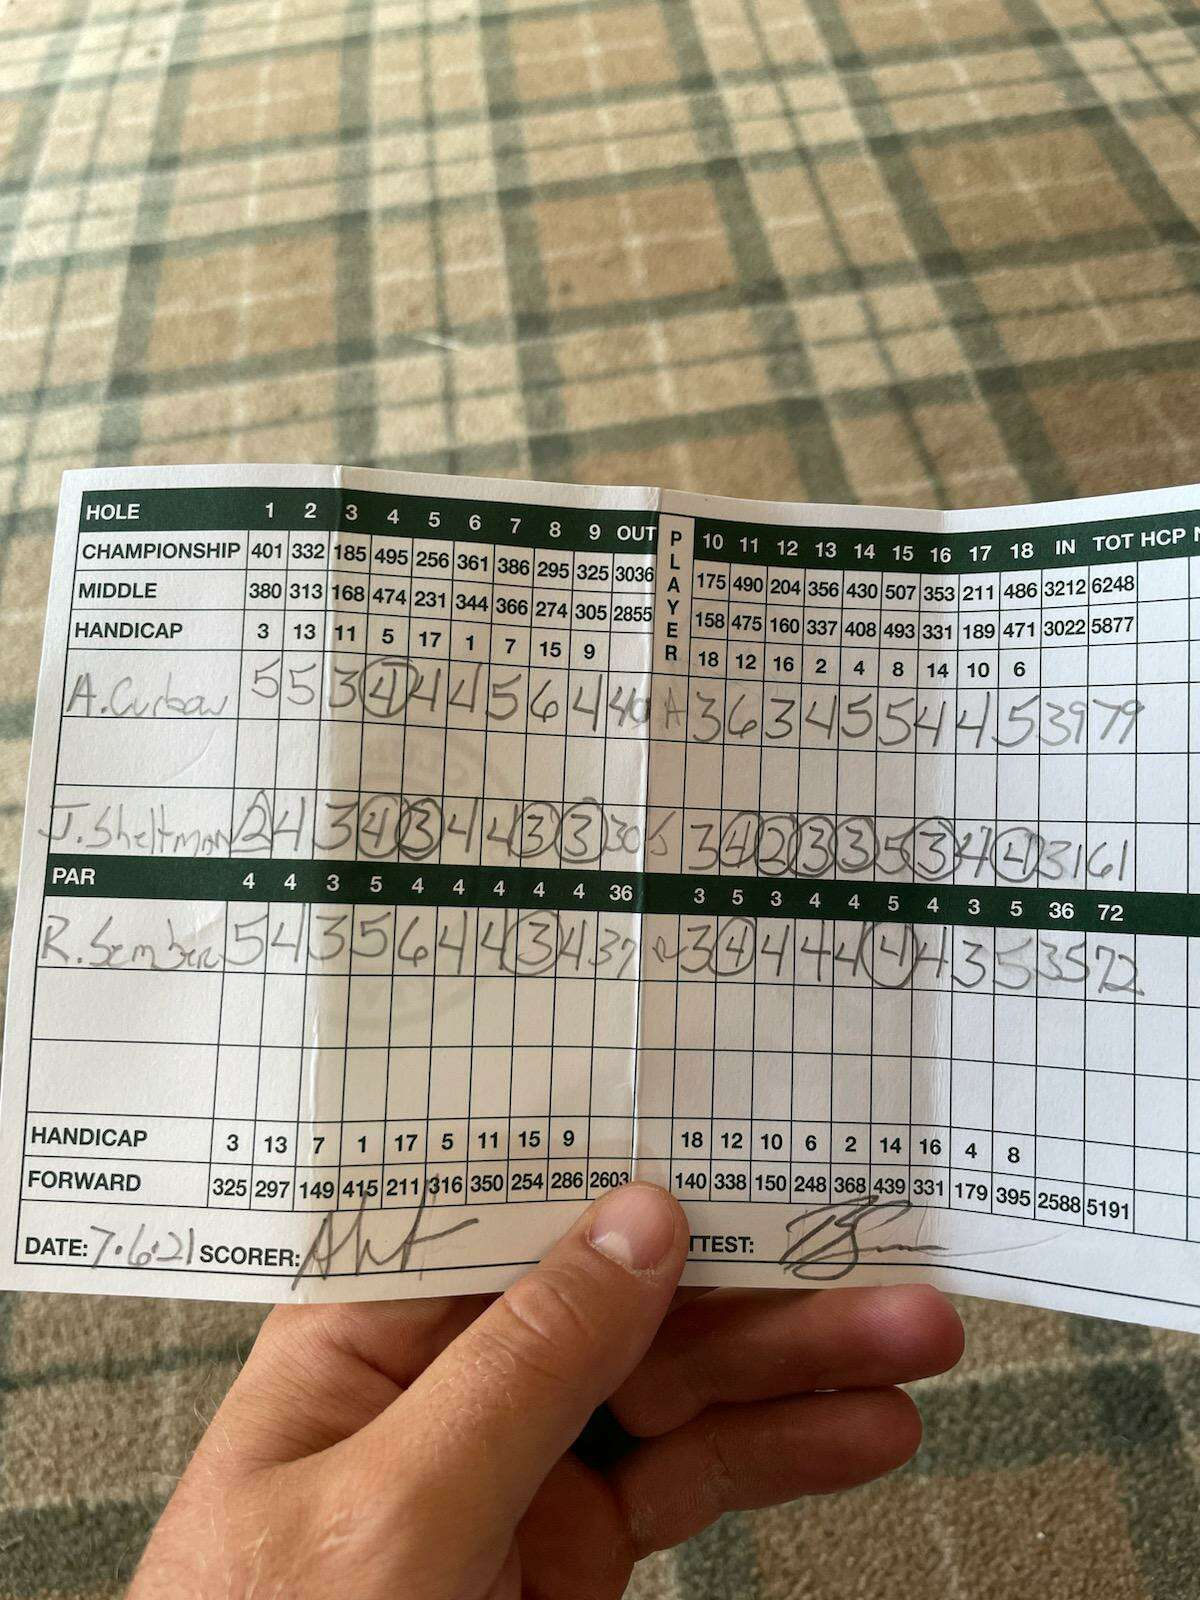 The new course record at Alling Memorial Golf Course belongs to James Sheltman. His 11-under-par round of 61, shot on July 6 is the middle one.